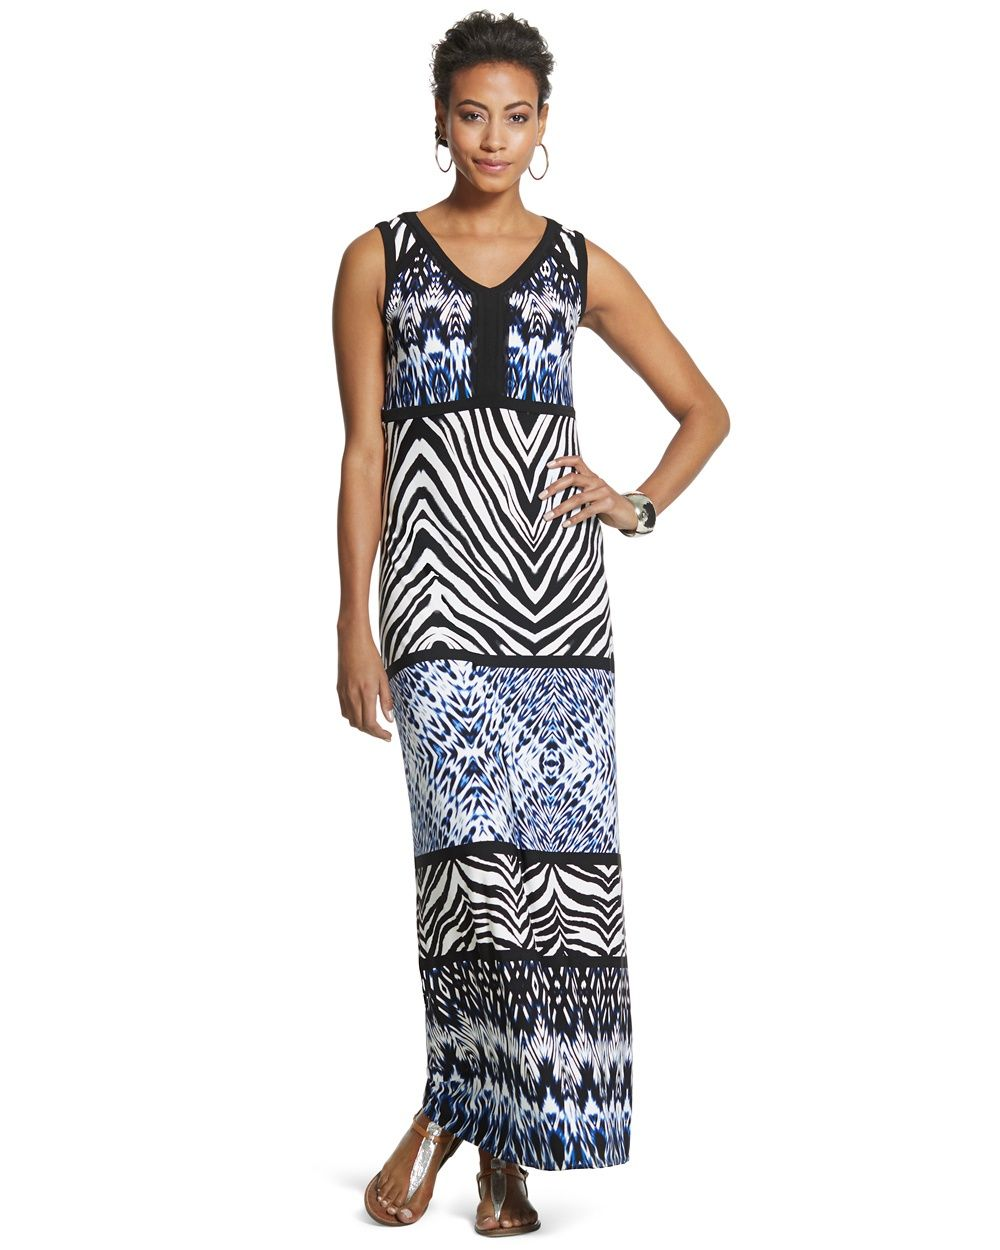 933d213353c Chico s Women s Knit Kit Printed Maxi Dress